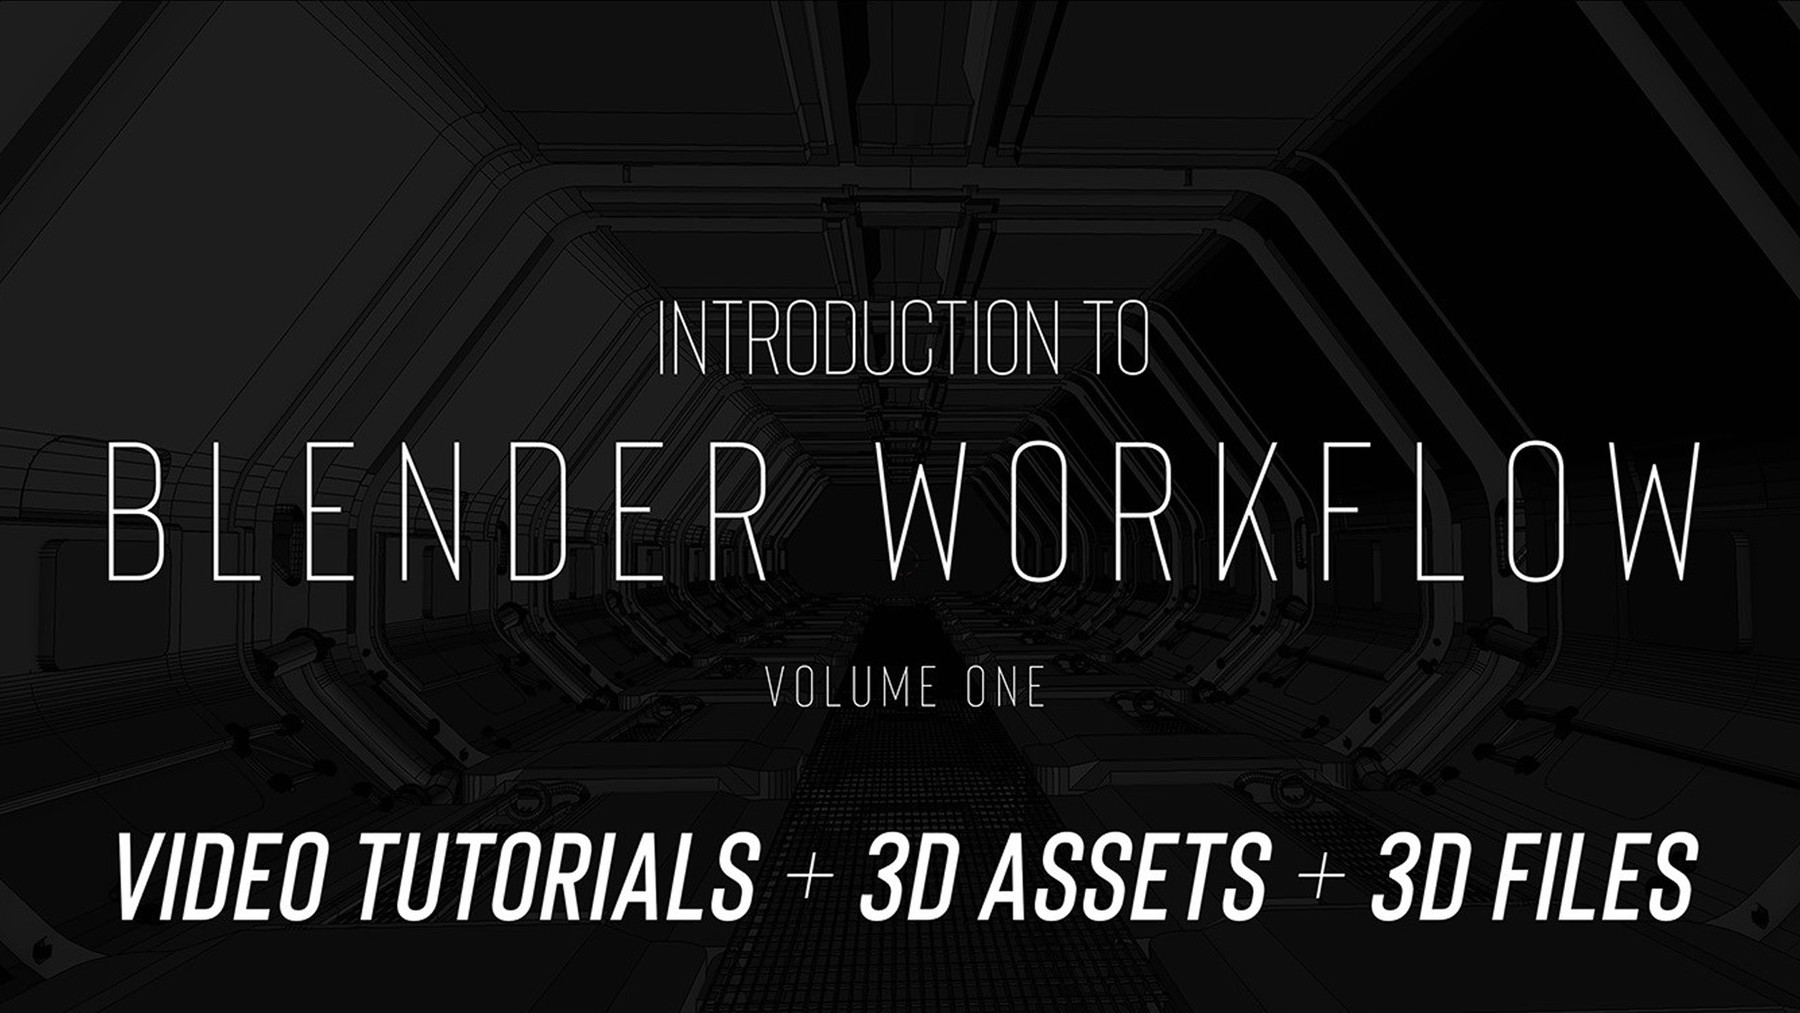 Jama Jurabaev - Introduction to Blender Workflow (Volume One)